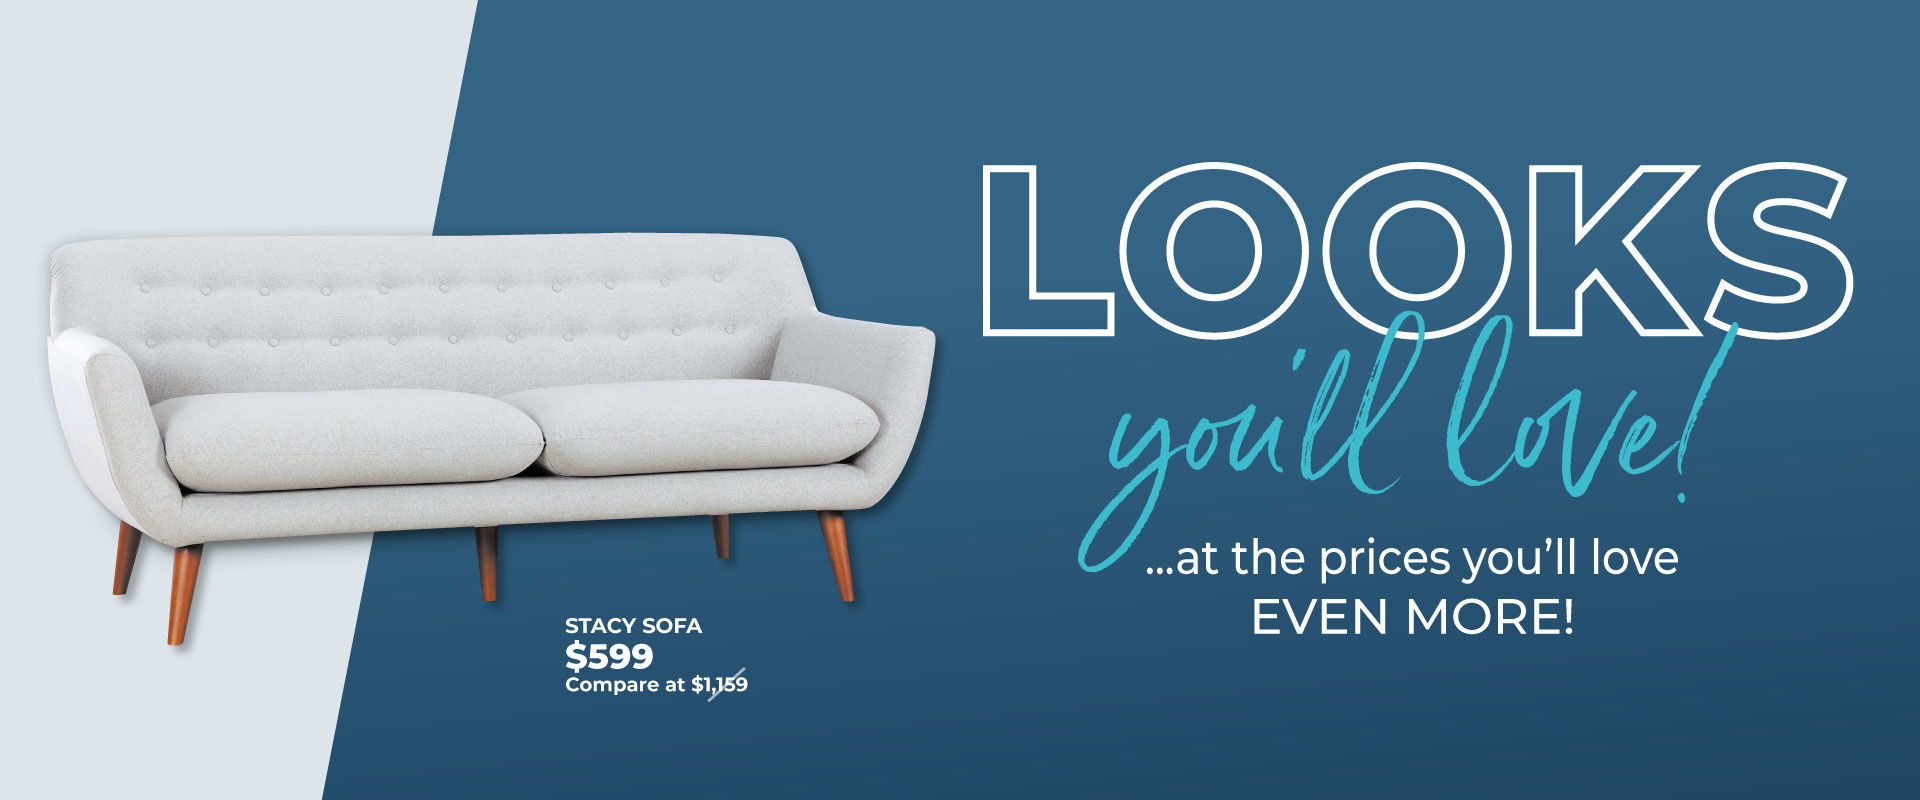 Looks You'll Love at the Prices You'll Love Even More!